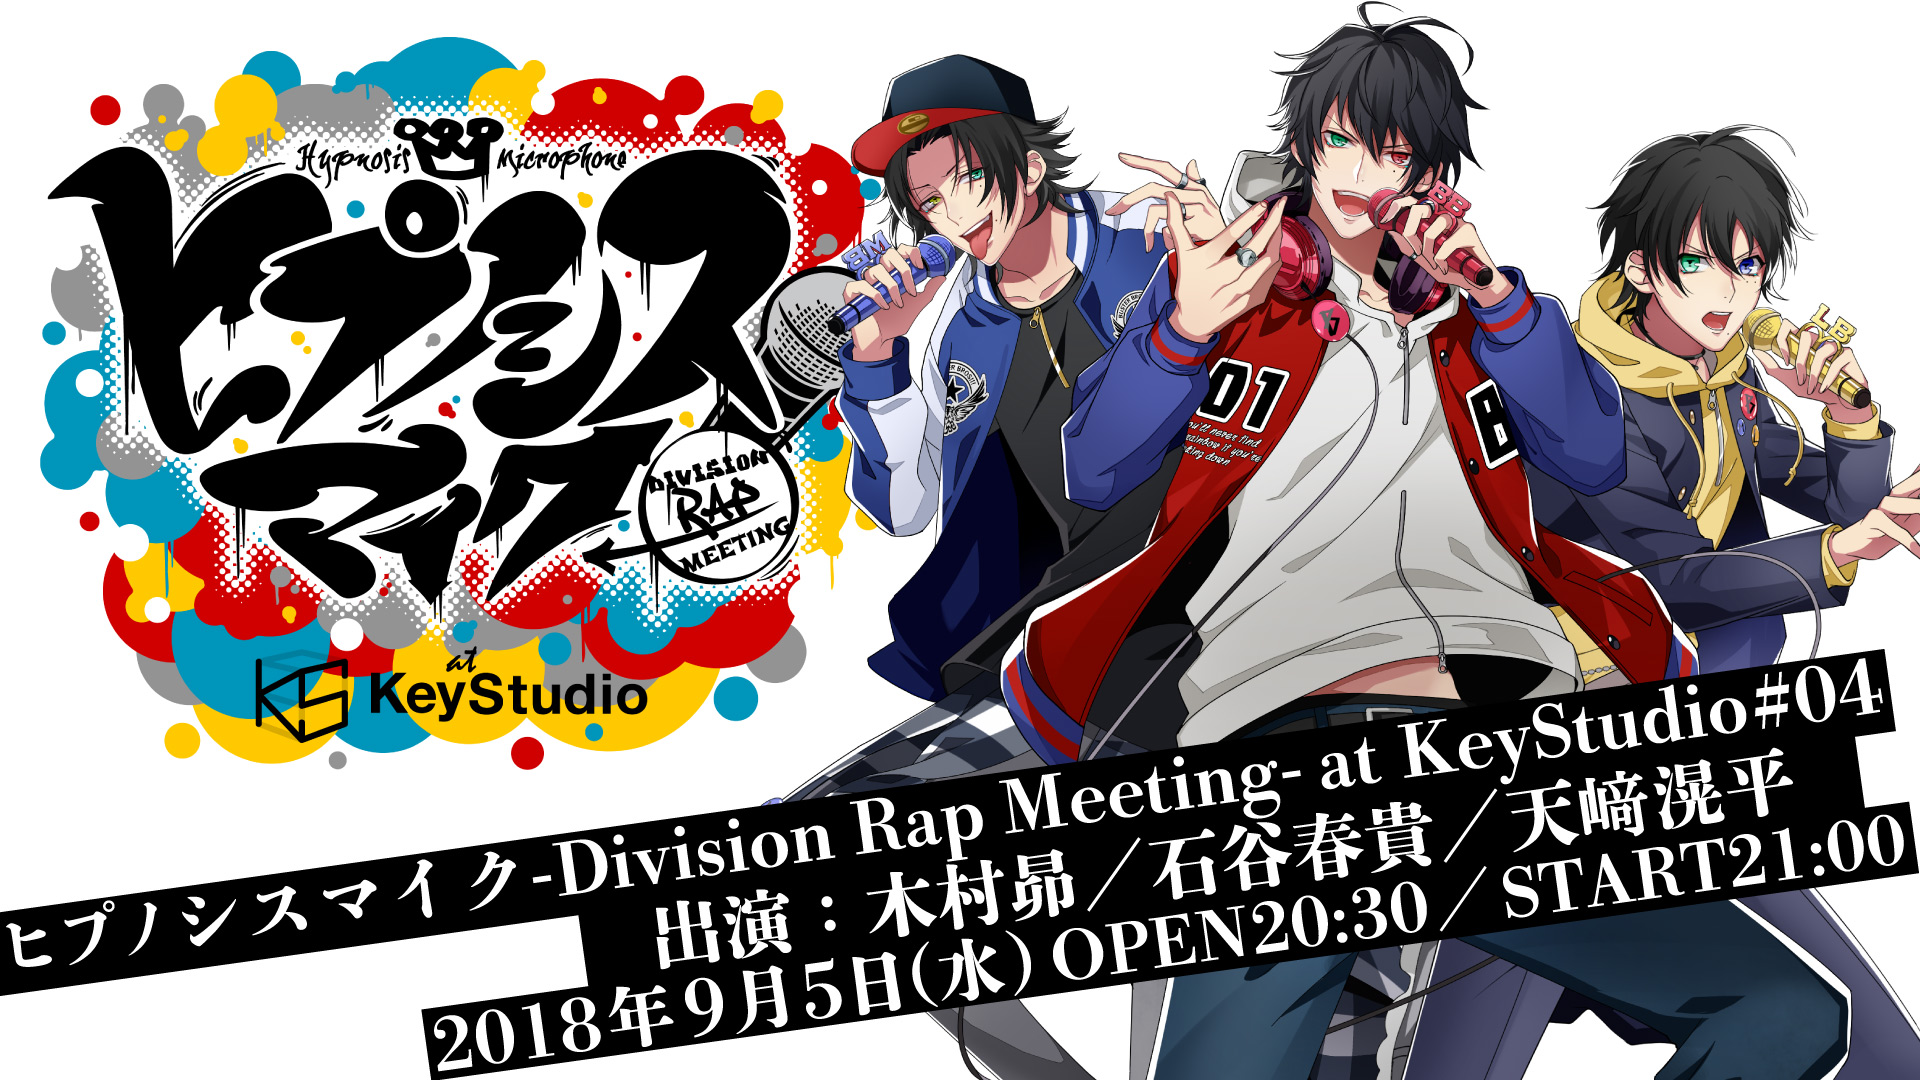 ヒプノシスマイク -Division Rap Meeting- at KeyStudio #04